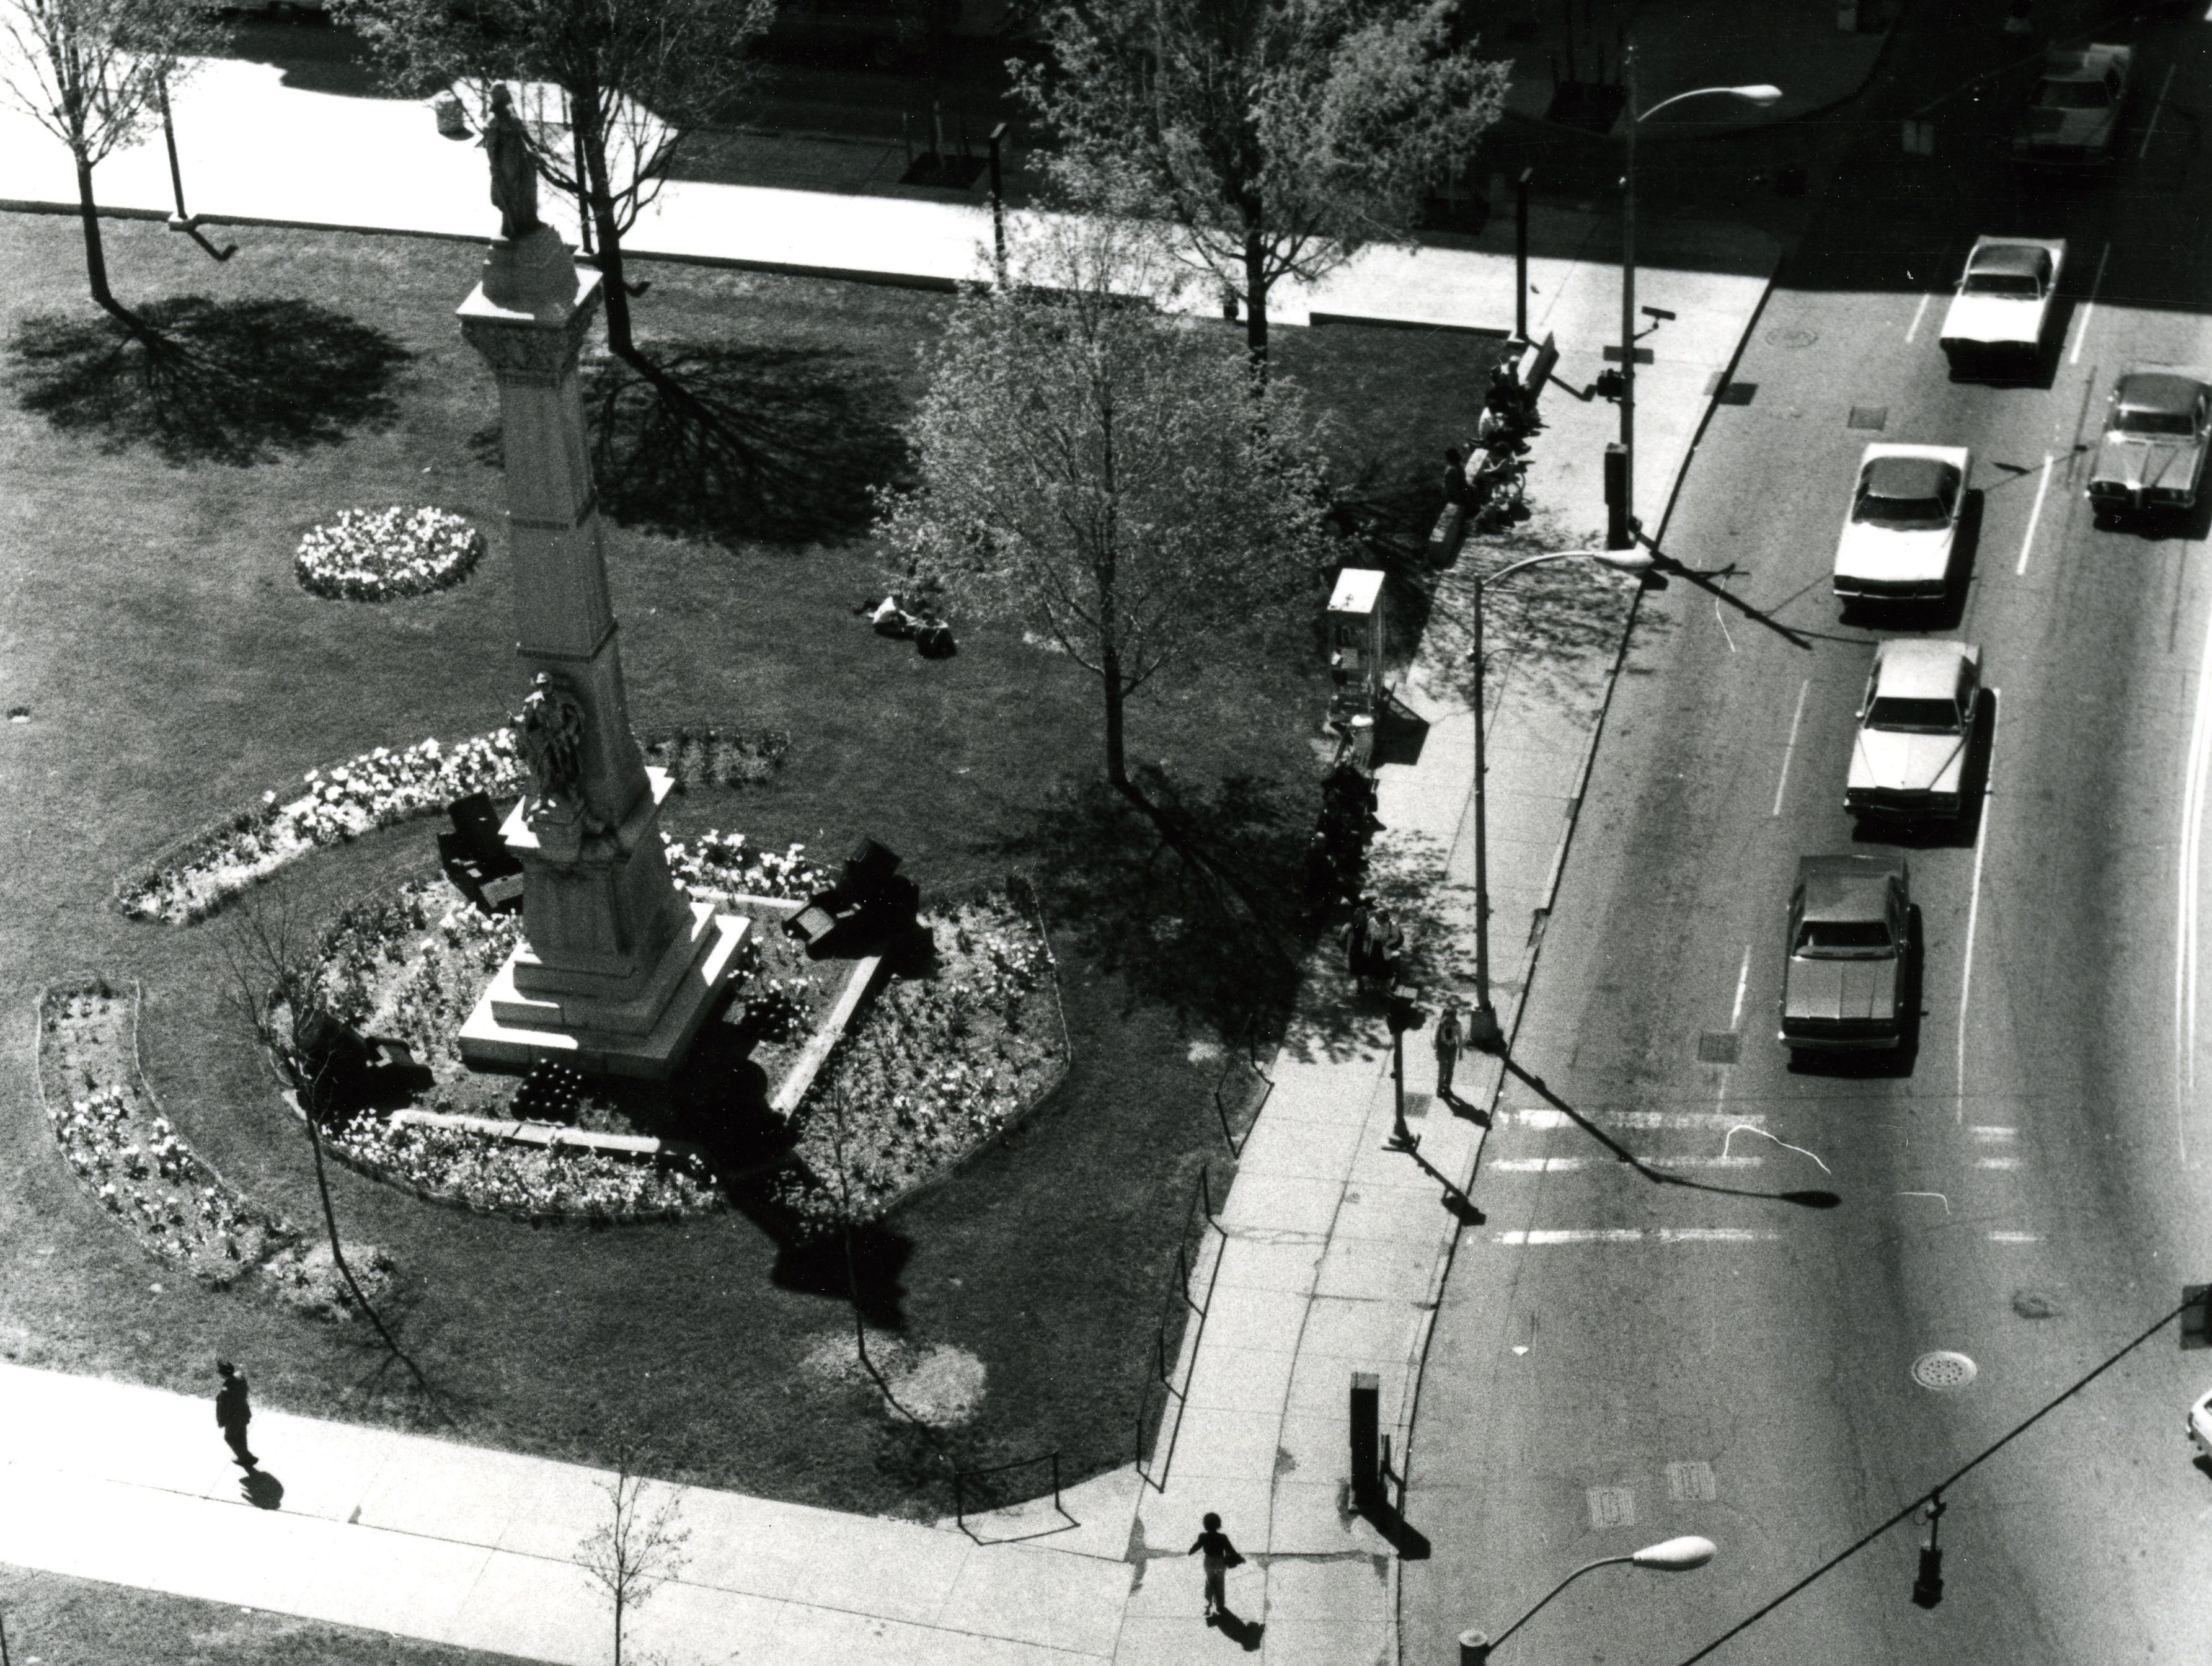 A birds-eye view of the front of Courthouse Square, about 1960.